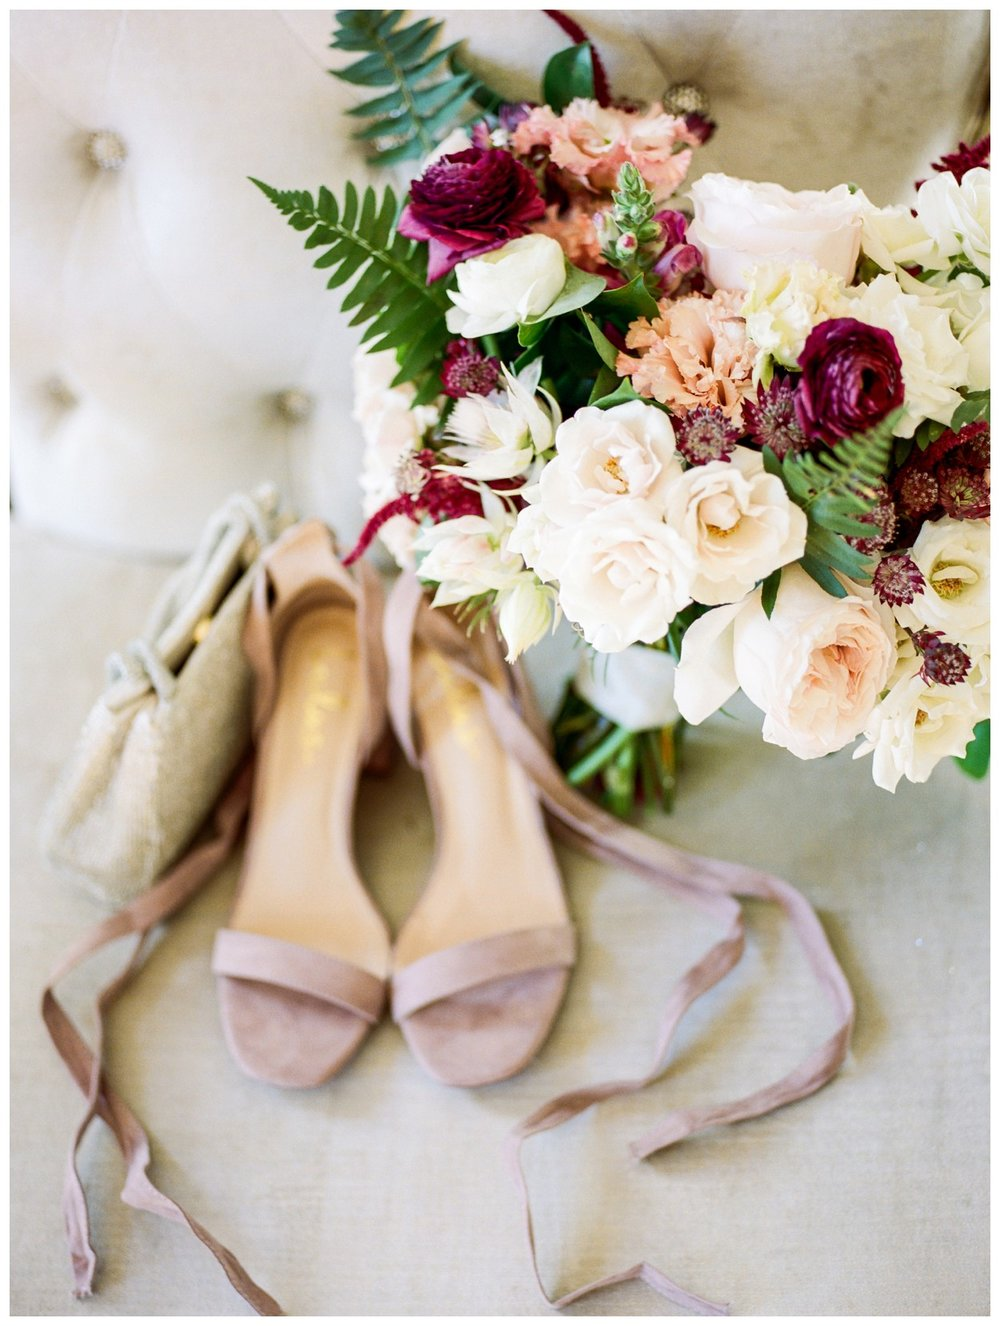 Sun drenched fall wedding in shades of pink at Oxon Hill Manor in Maryland beautiful bridal details by fine art wedding photographer Lissa Ryan Photography